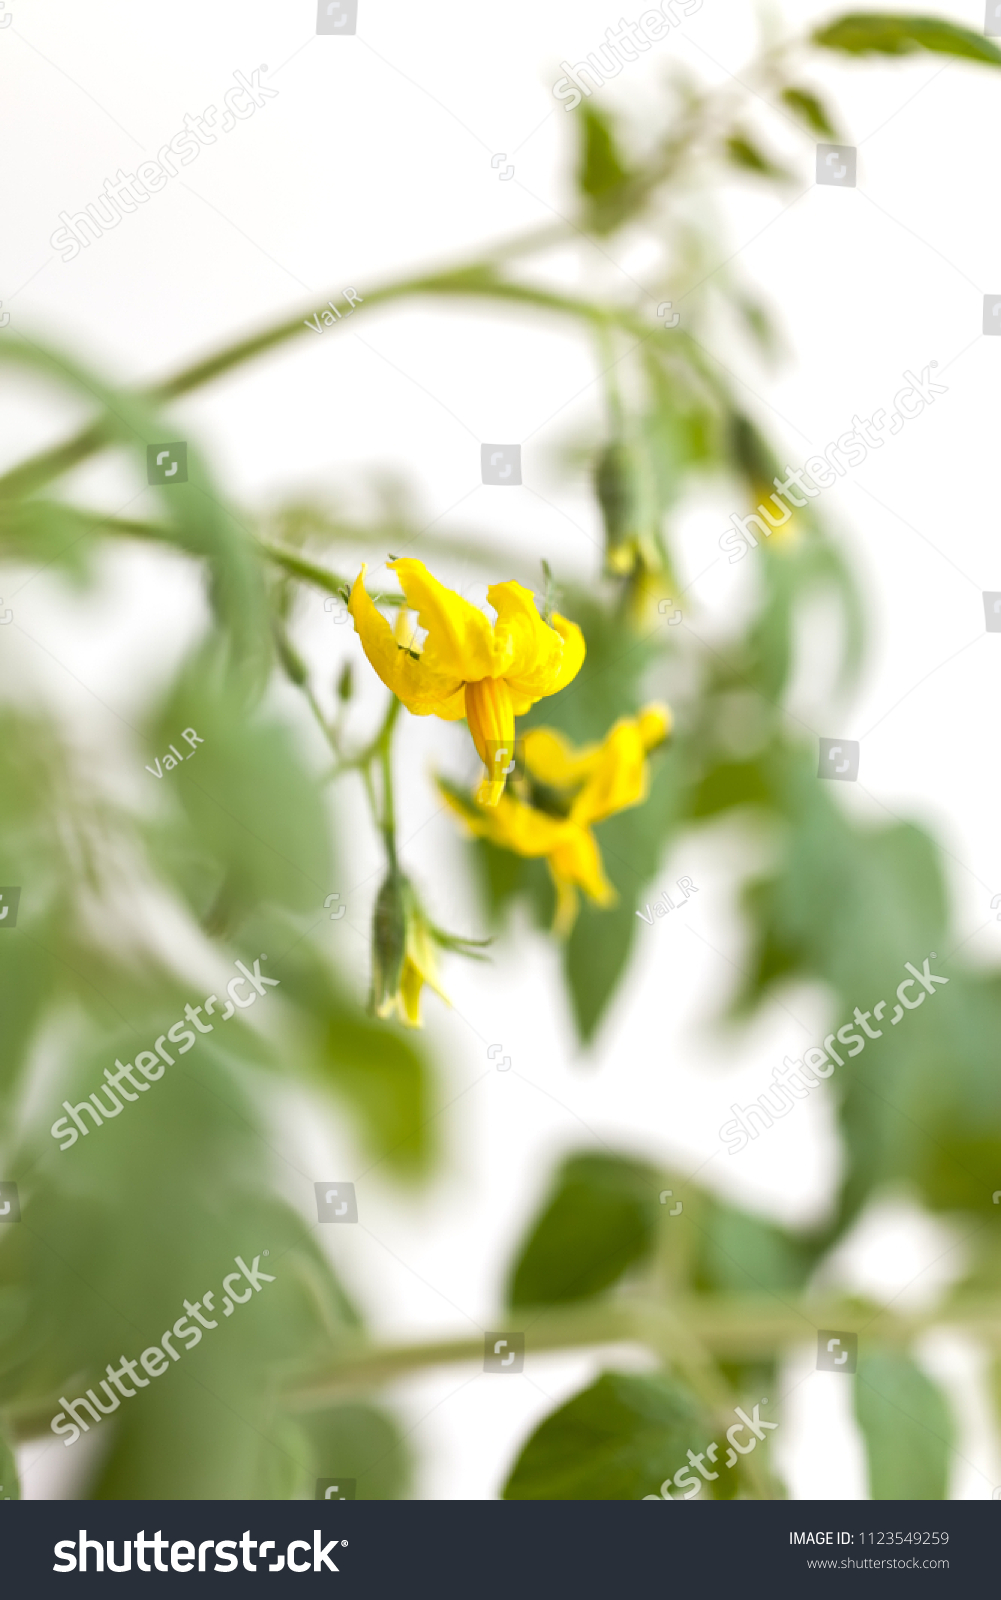 Twig Of Tomato Plant With Yellow Flowers On White Background Ez Canvas